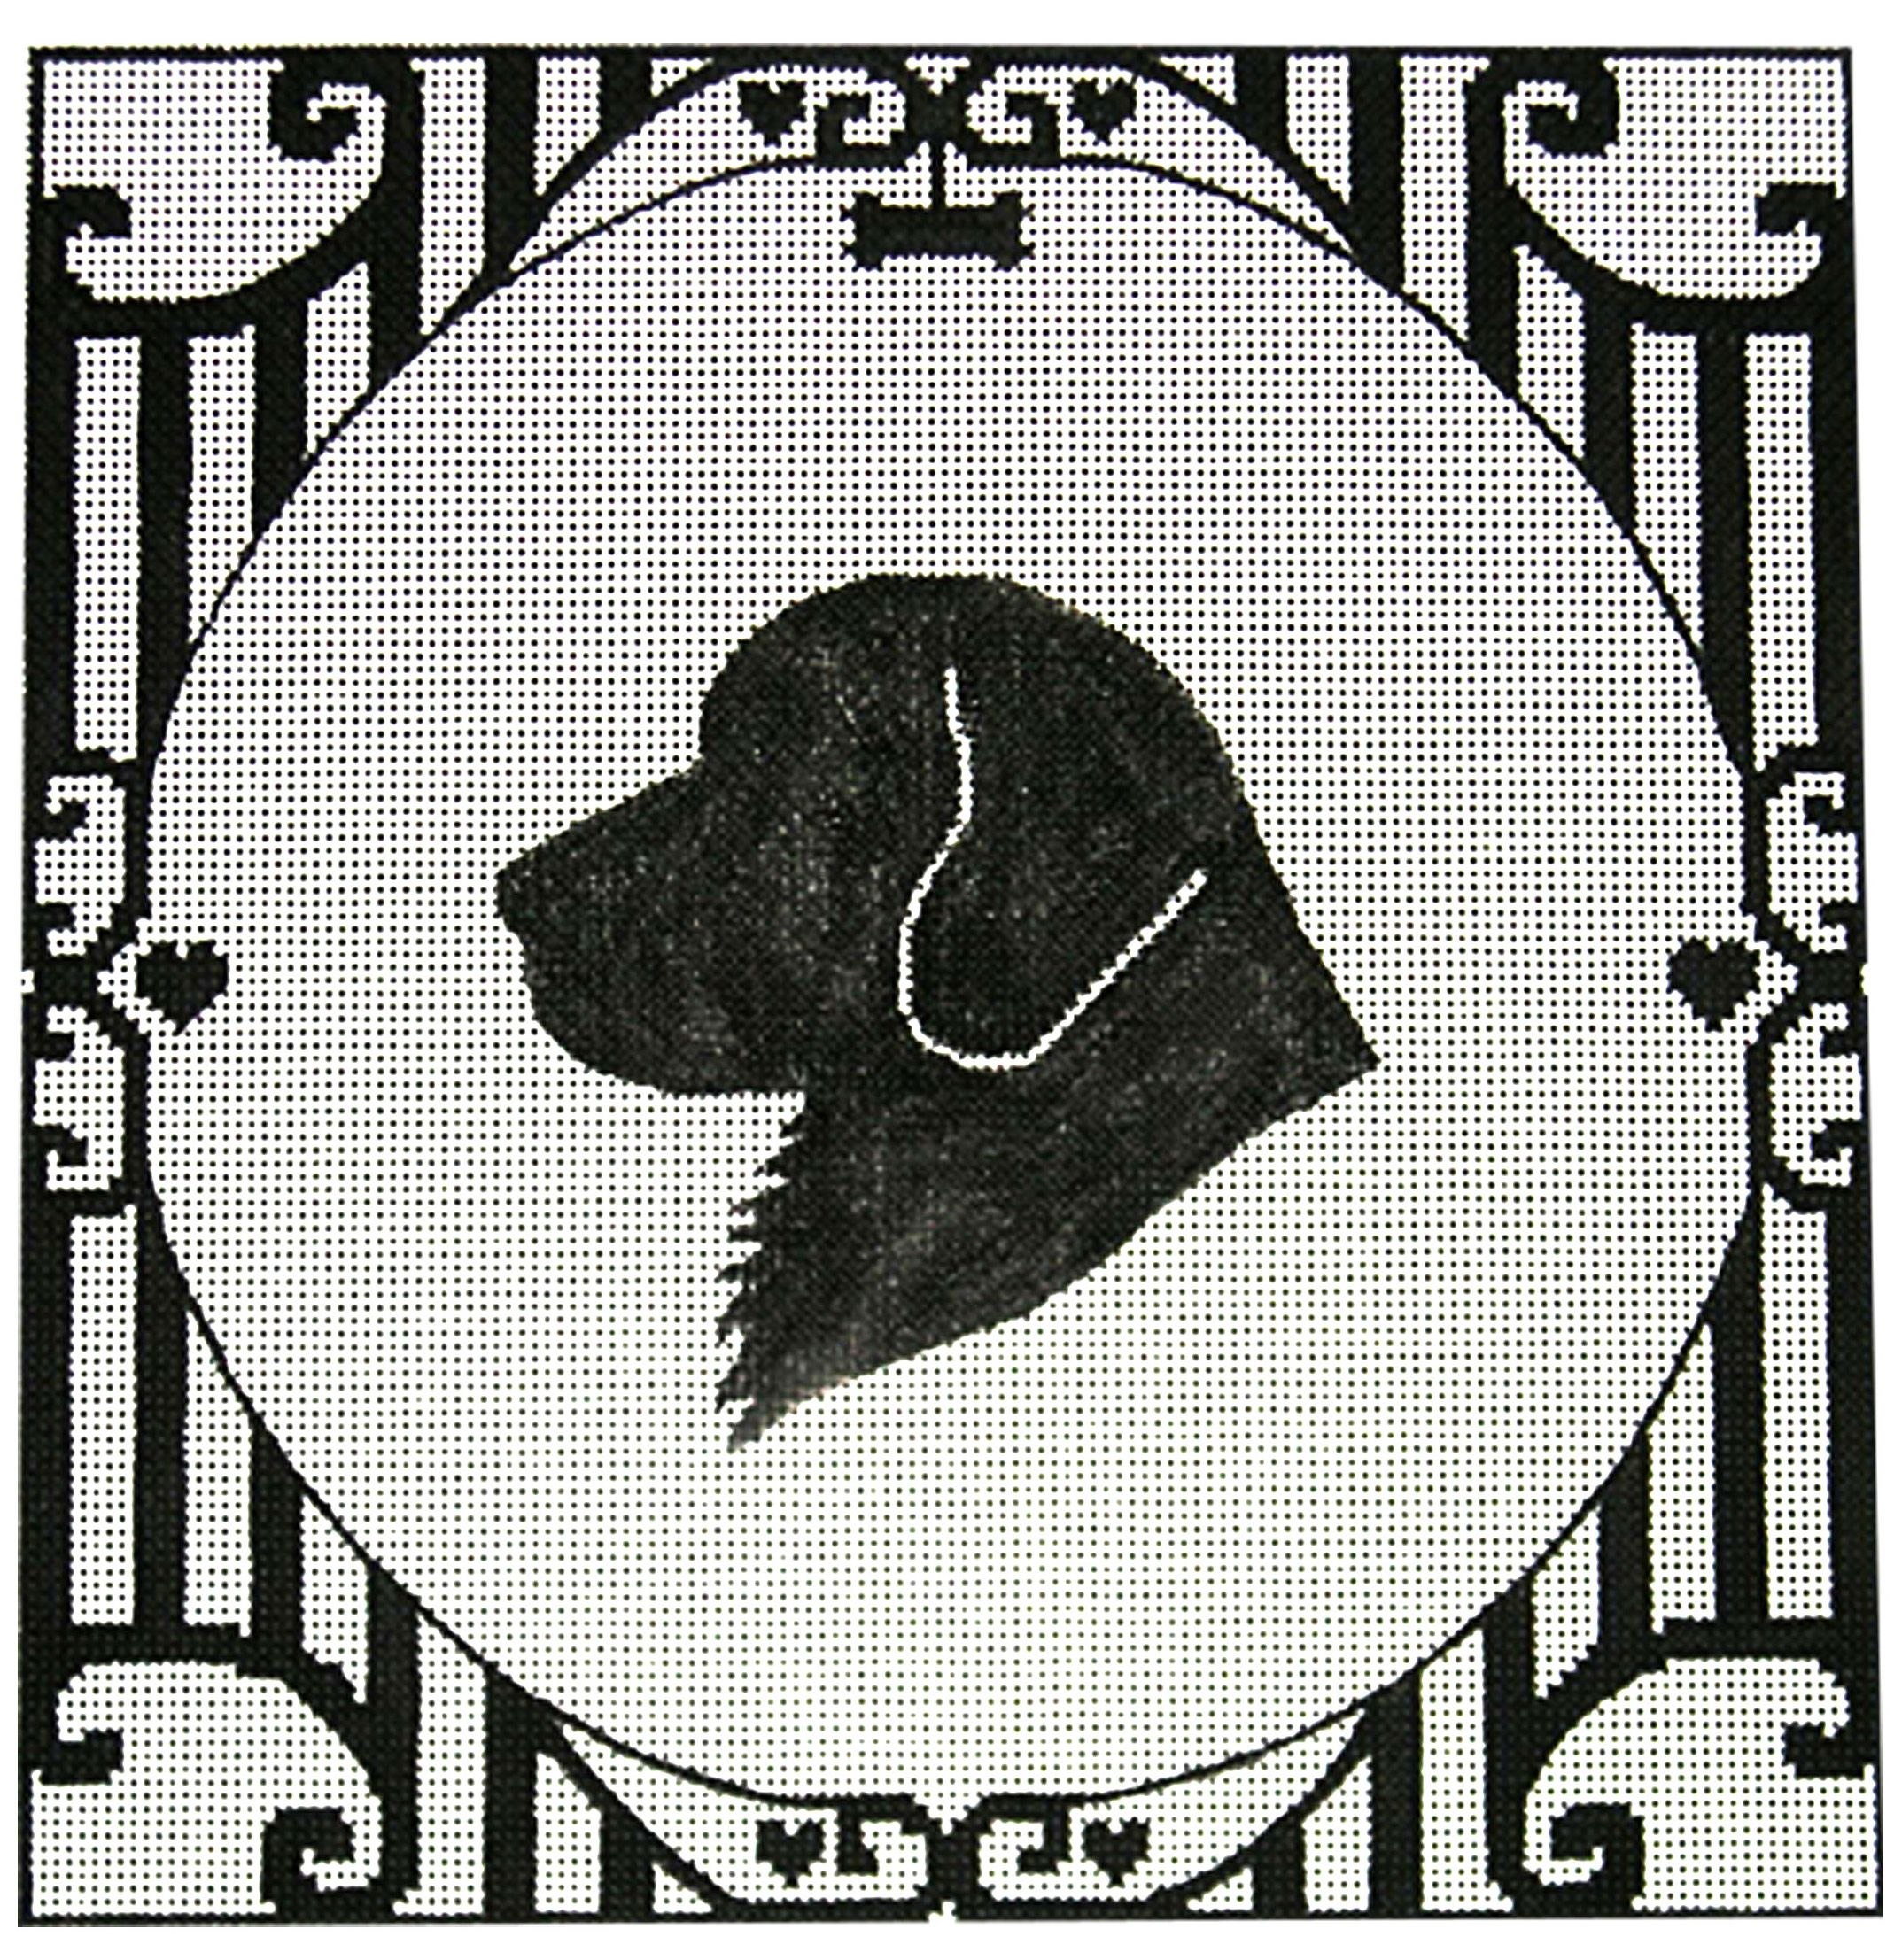 Pin On Animal Silhouette Needlepoint Collection